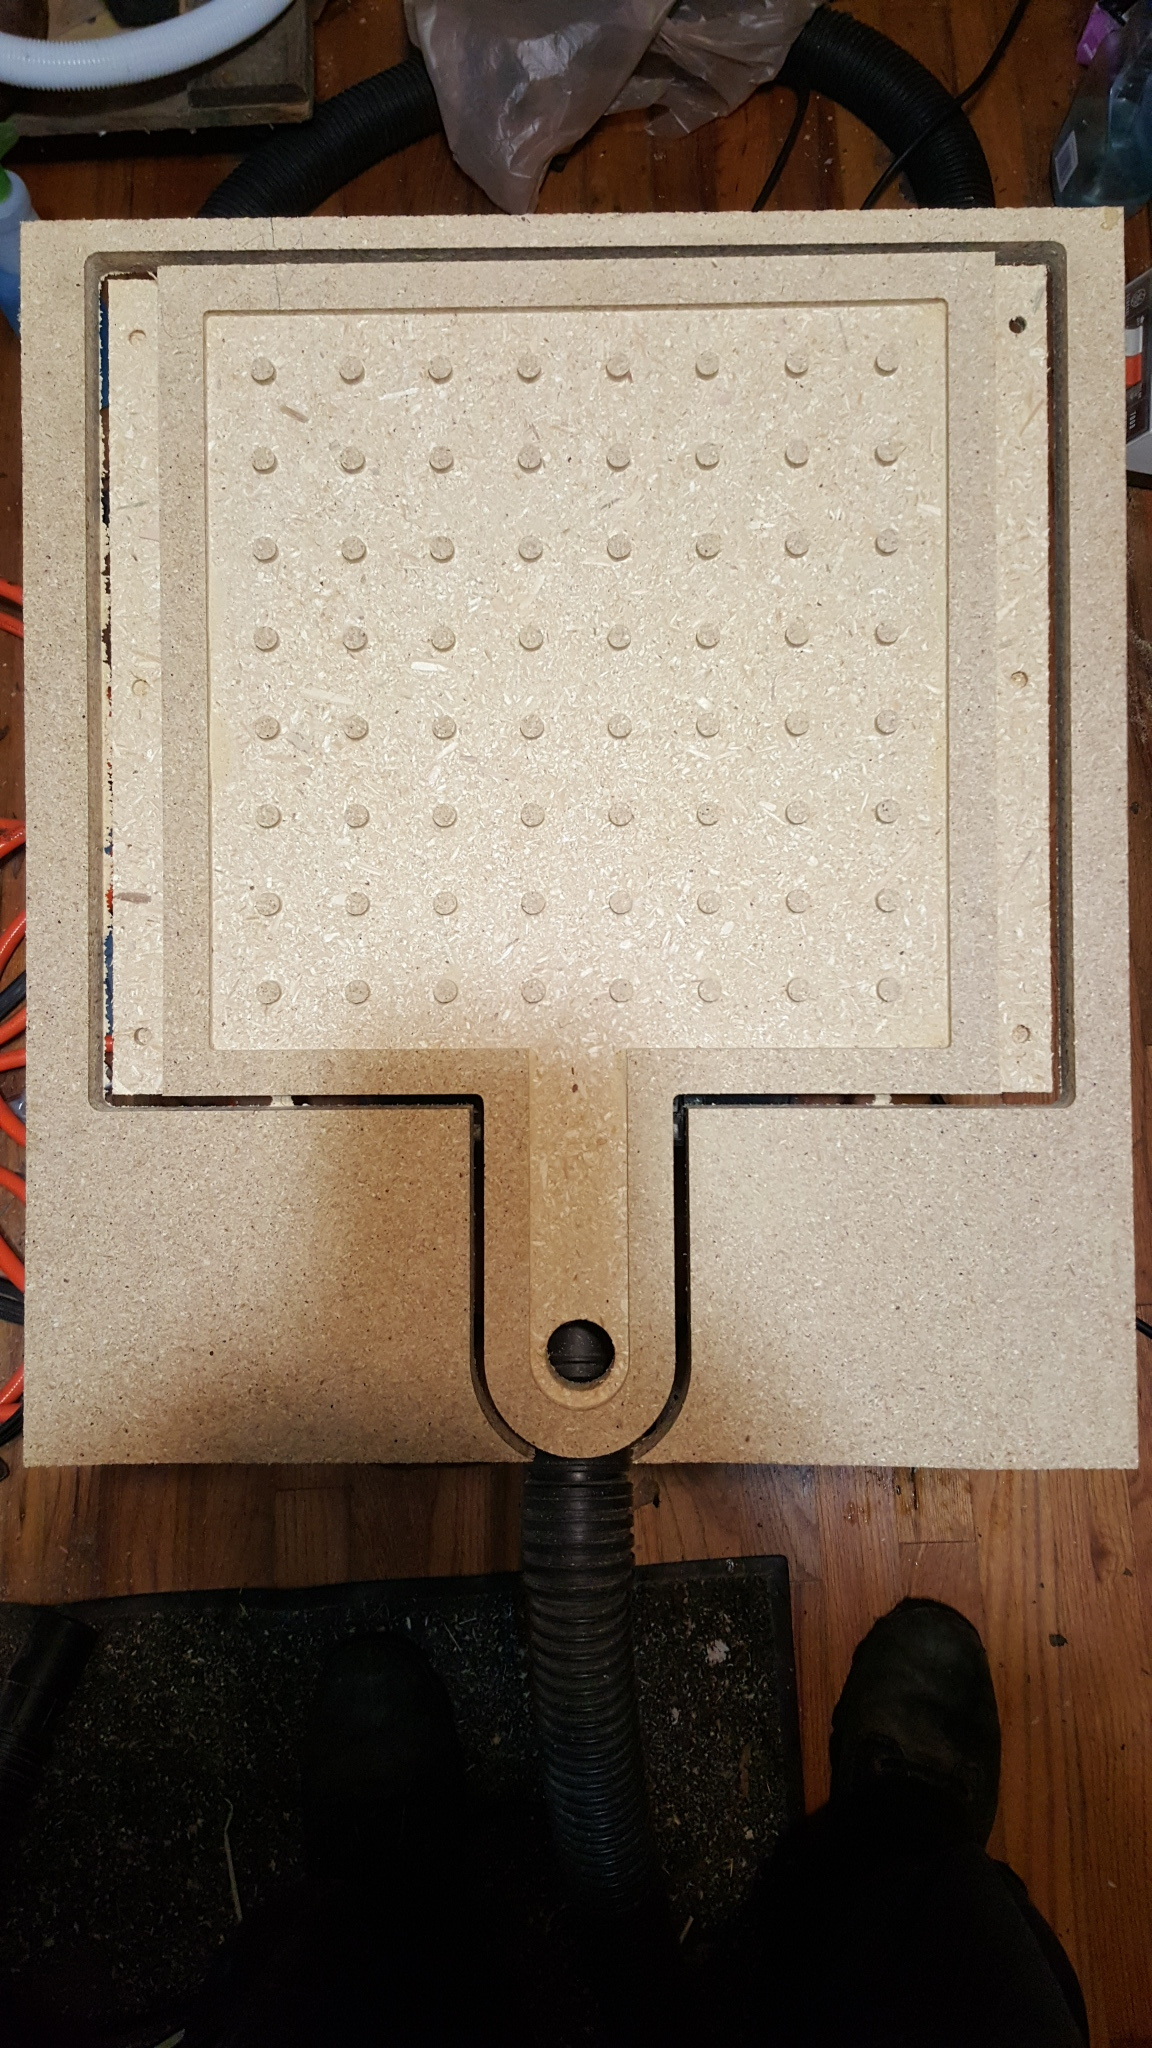 12x12 Vacuum Table Projects Inventables Community Forum